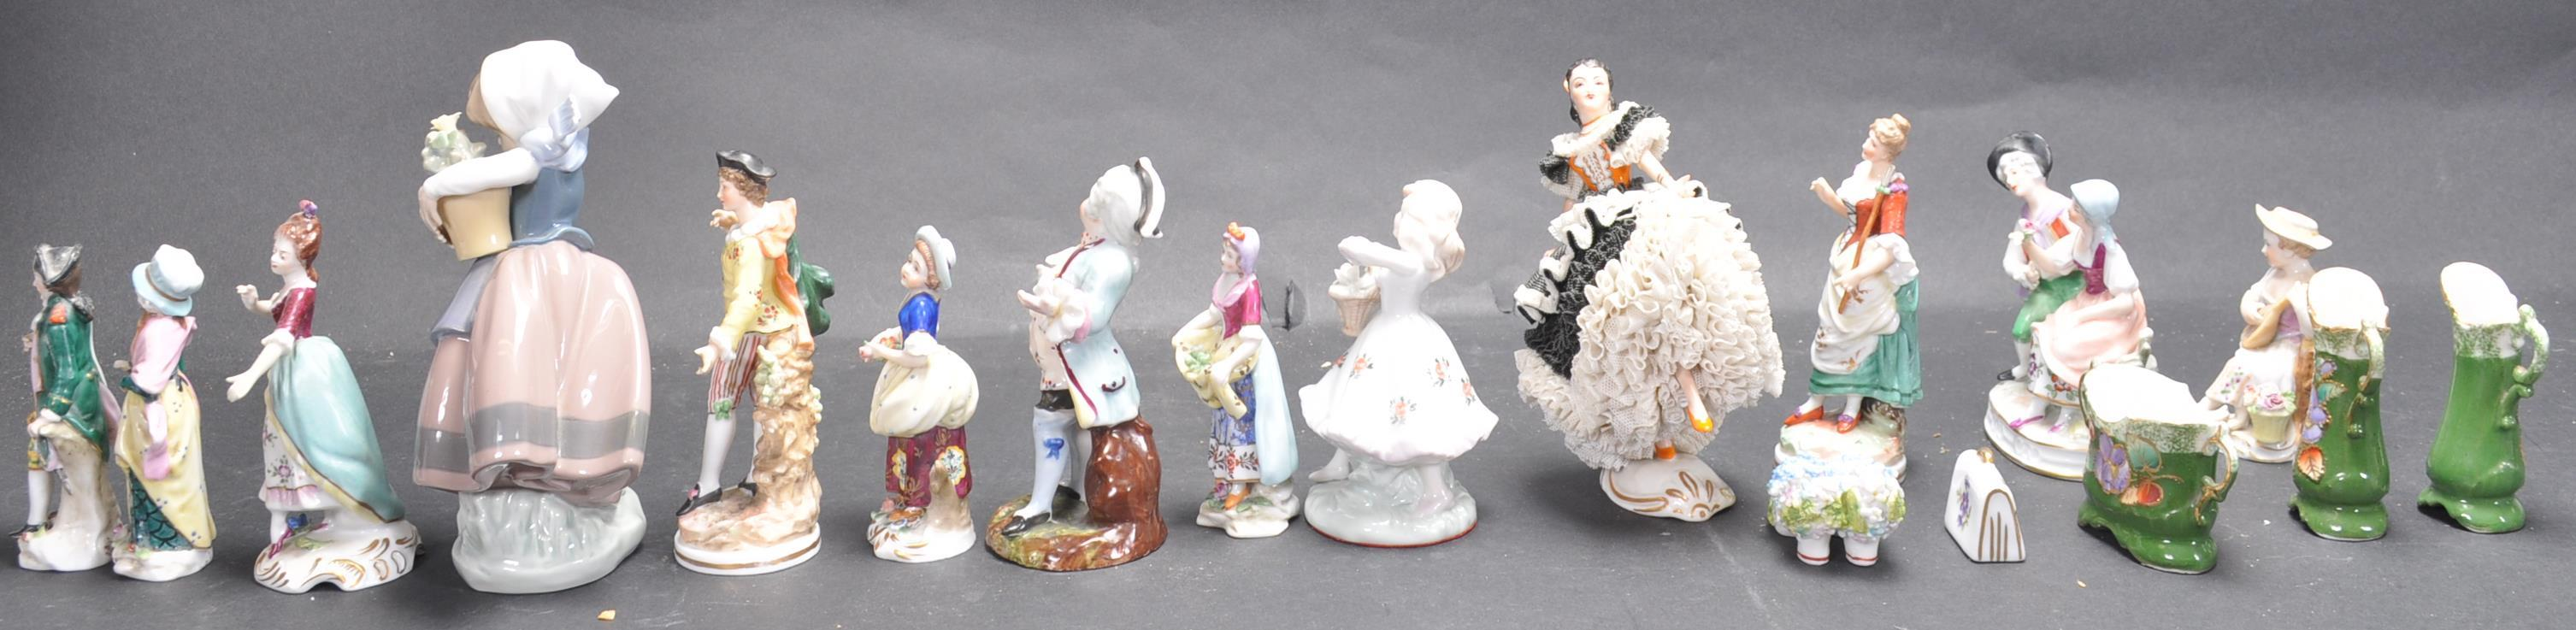 LARGE COLLECTION OF EARLY 20TH CENTURY CONTINENTAL FIGURINES - Image 4 of 6